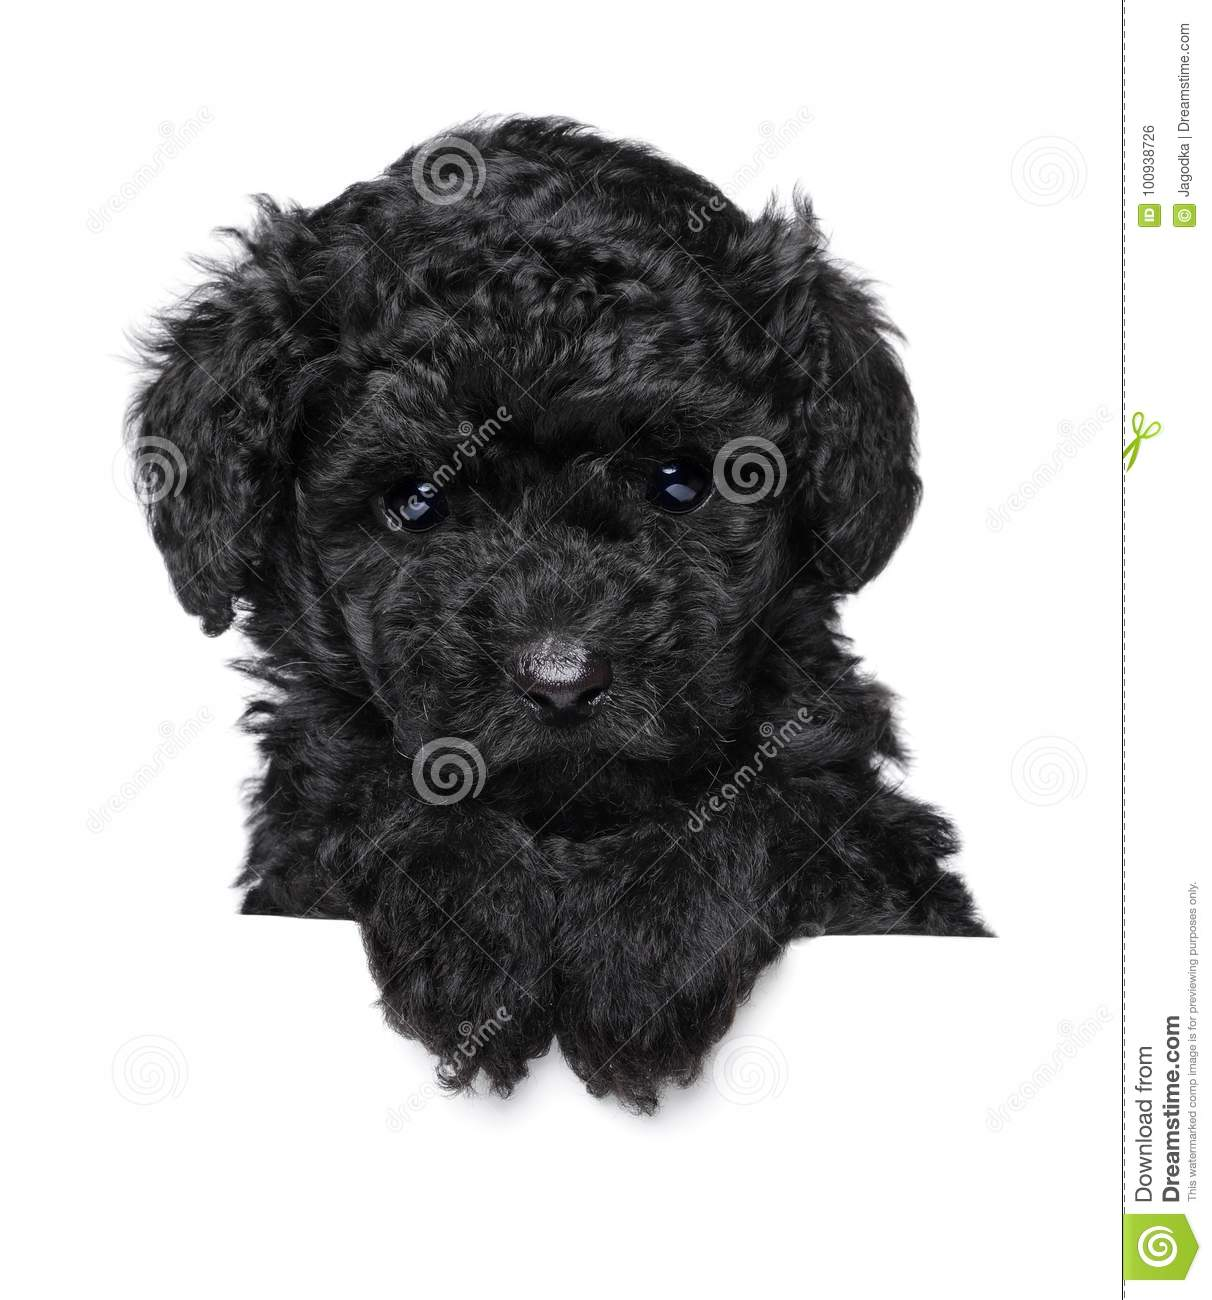 Toy Poodle Puppy Above Banner Stock Photo - Image of funny, front